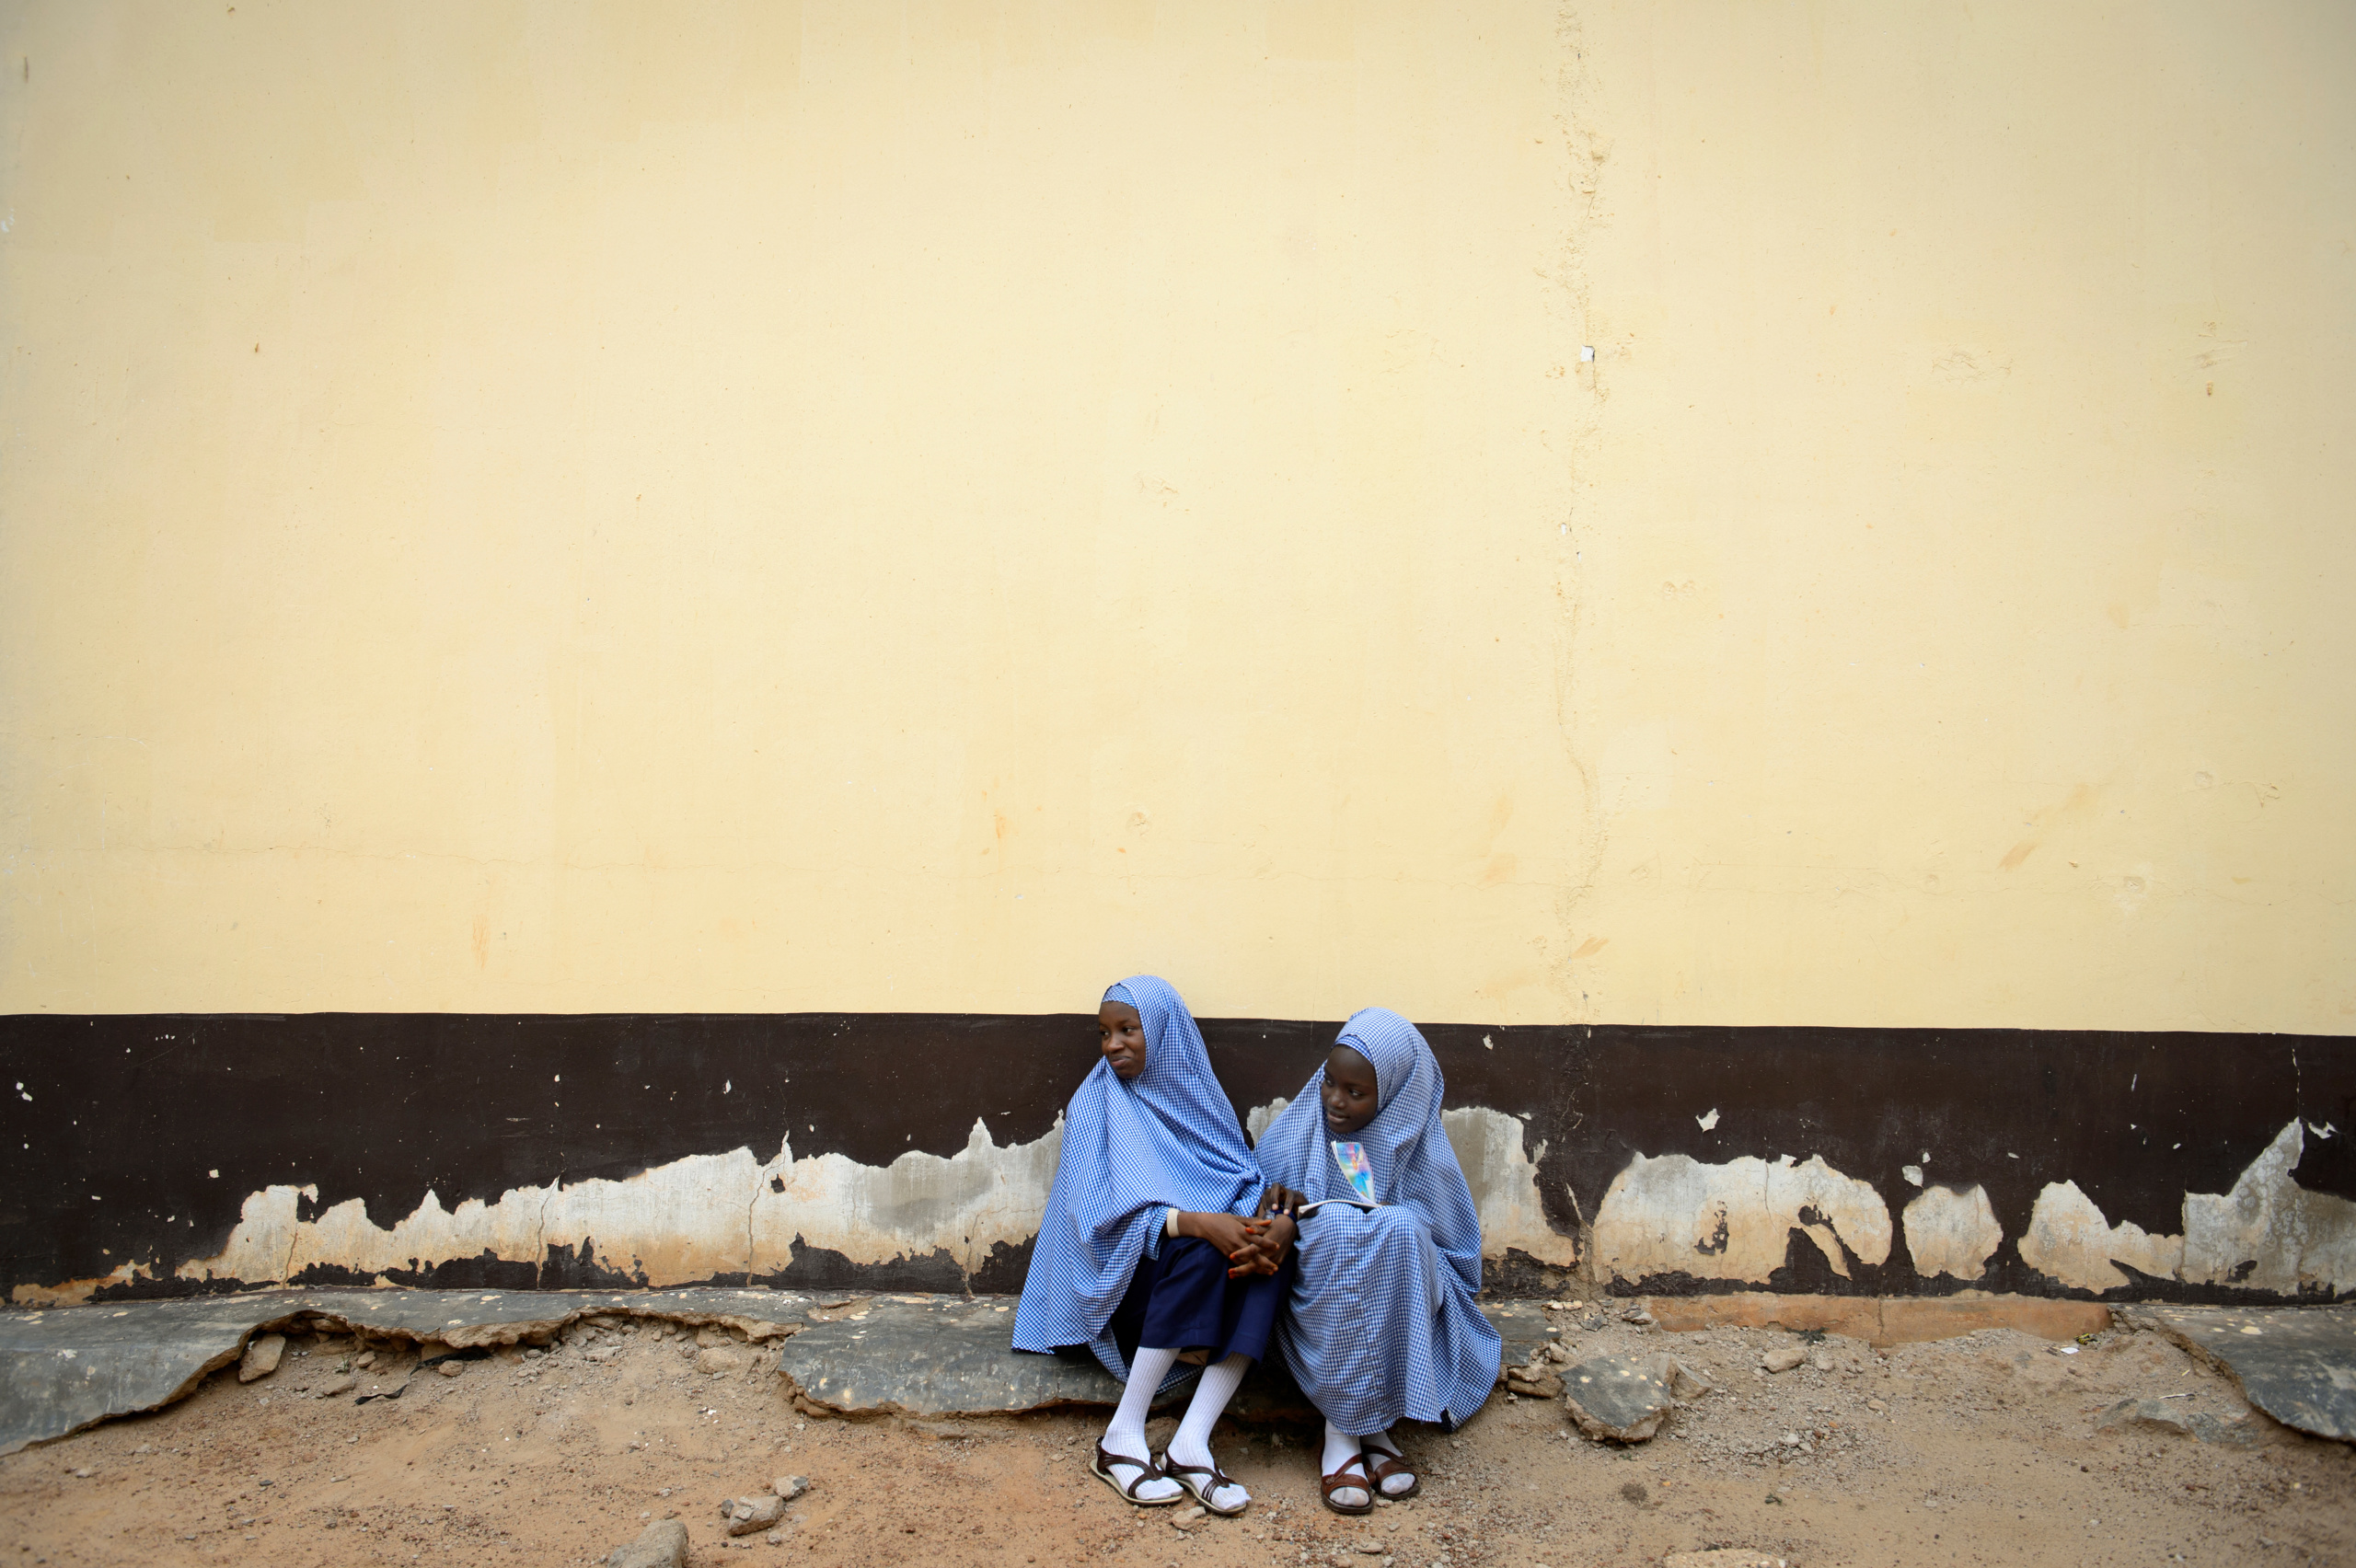 NIGERIA,Kaduna.Two girls in an interdenominational school of Kaduna.Nearly 4,000 people have died in Nigeria due to the violent conflict over the past decade.The economic and ethnic conflict in the northern states has a religious dimension. It is only with true governance that these conflicting differences could be managed. As elsewhere in Nigeria, residents accuse both local and state government officials for promoting identity-based divisions to advance their own political agendas.